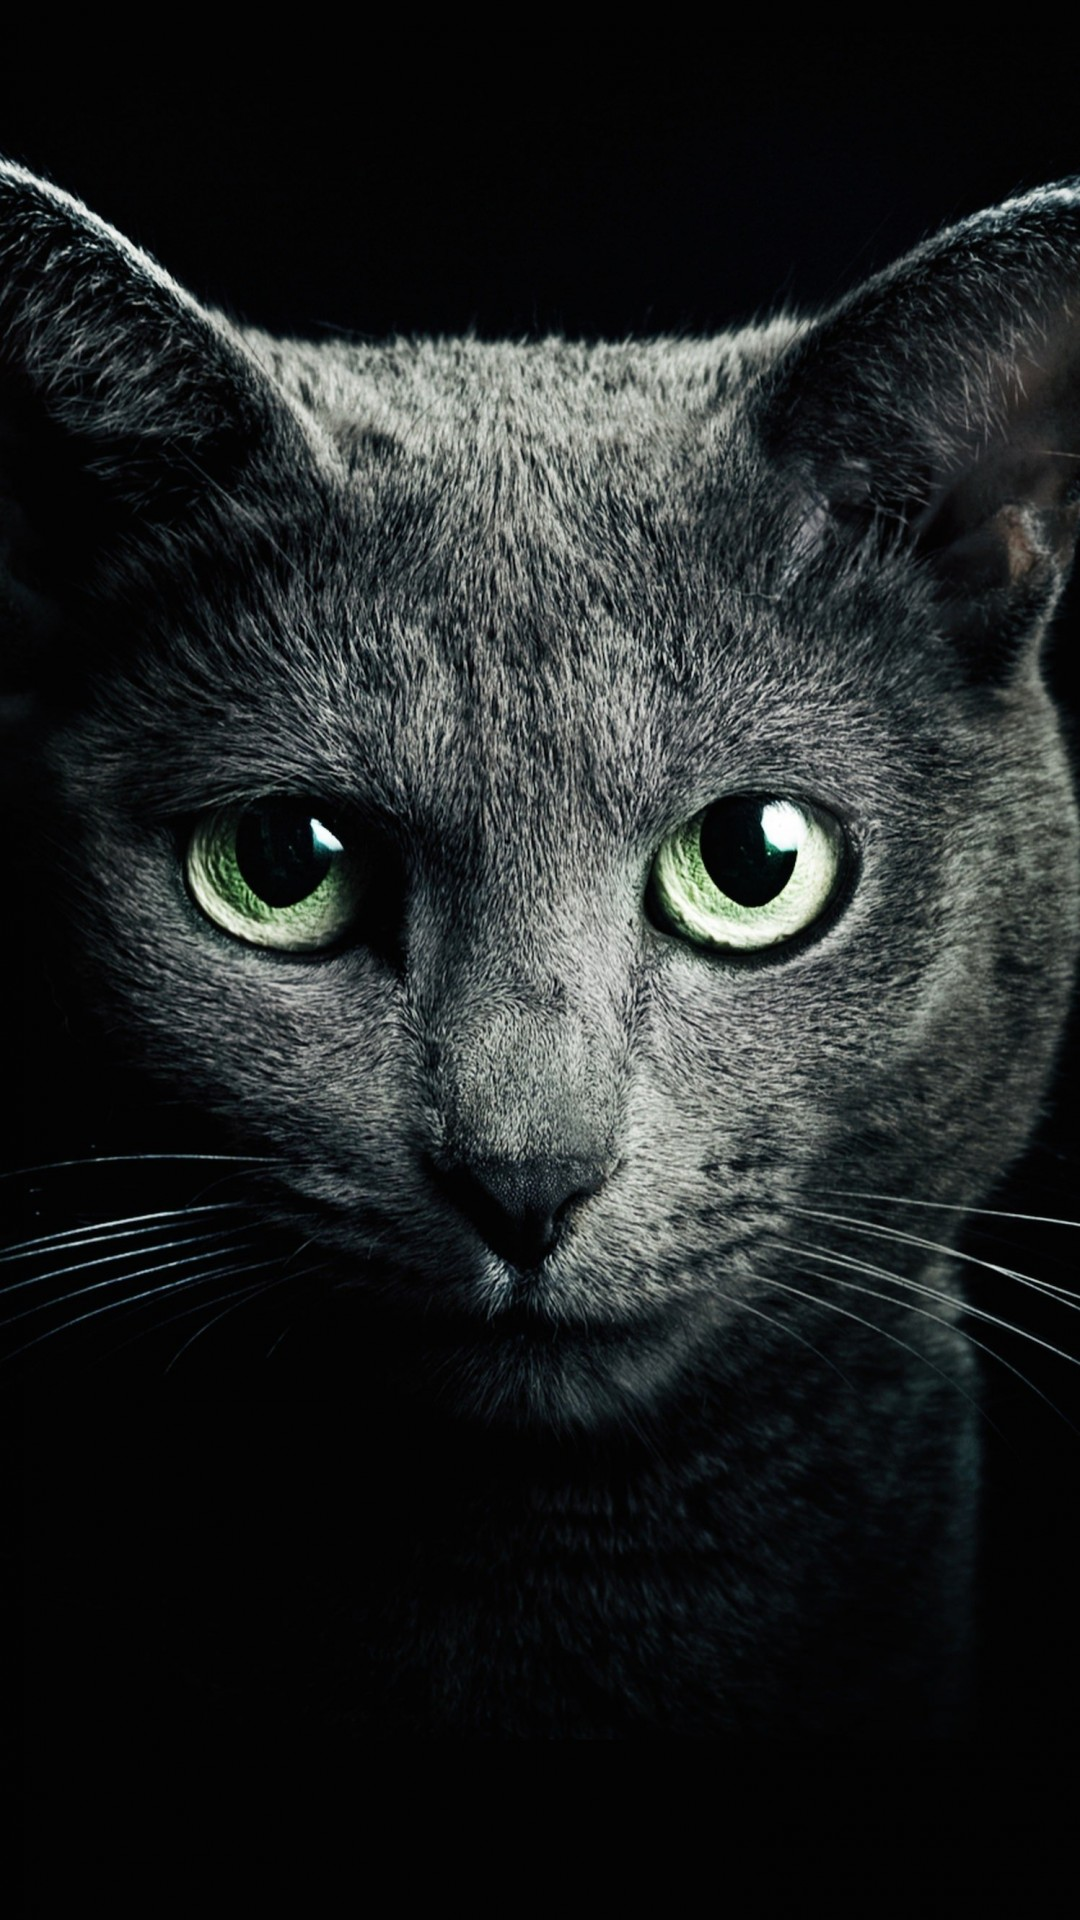 Russian Blue Cat Wallpaper for SAMSUNG Galaxy Note 3